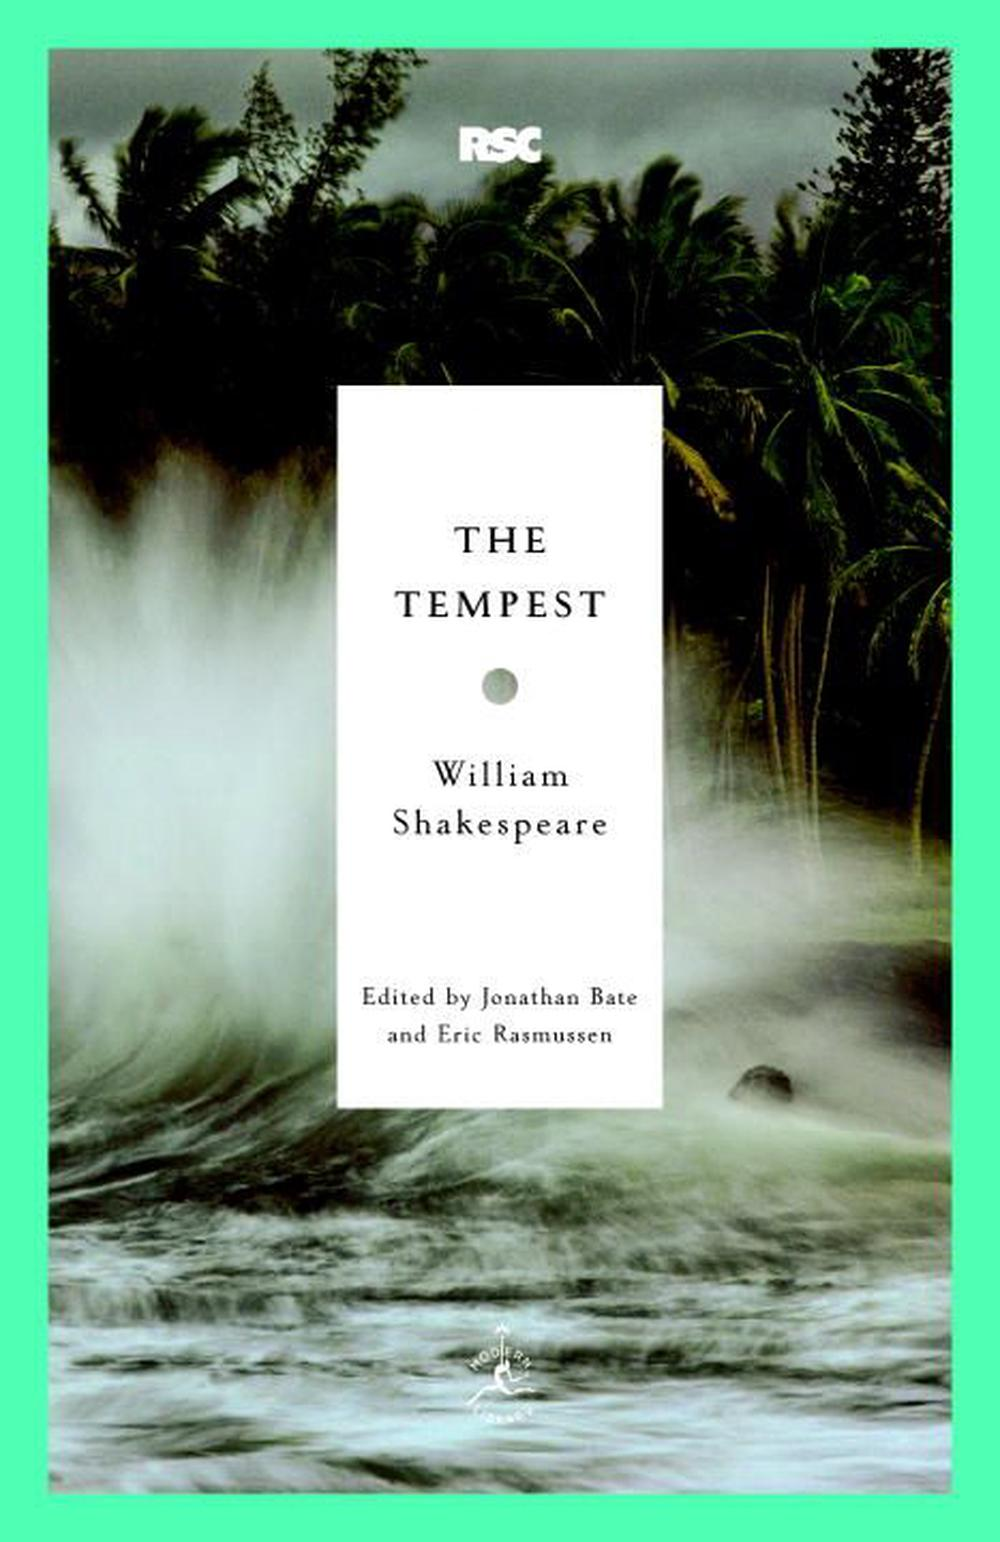 questioning the queens values in the tempest by william shakespeare Transcript of allusions to shakespeare:the tempest  the tempest by william shakespeare  our values press.